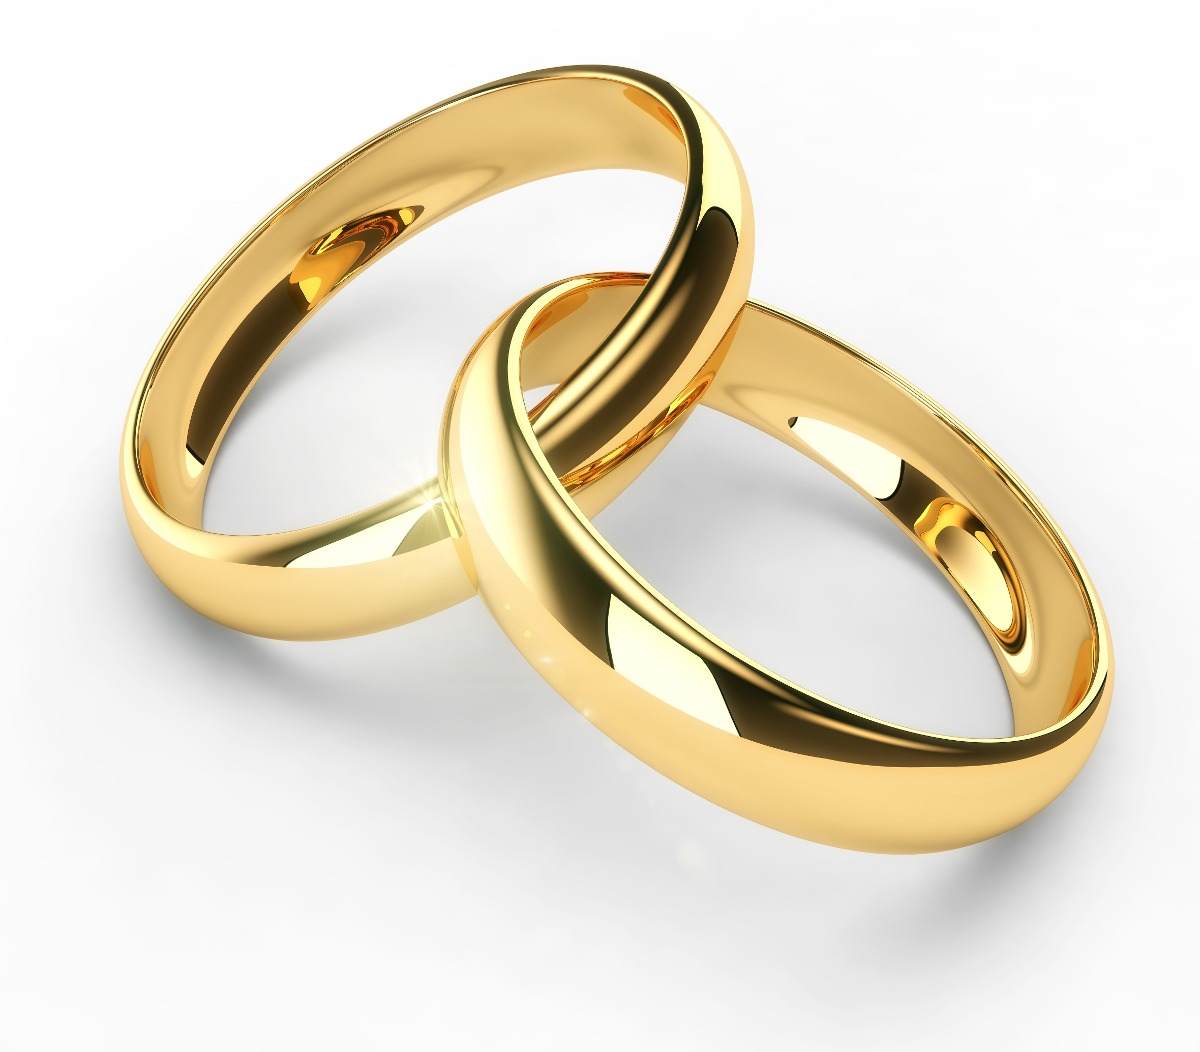 Cleric slumps, dies while officiating wedding